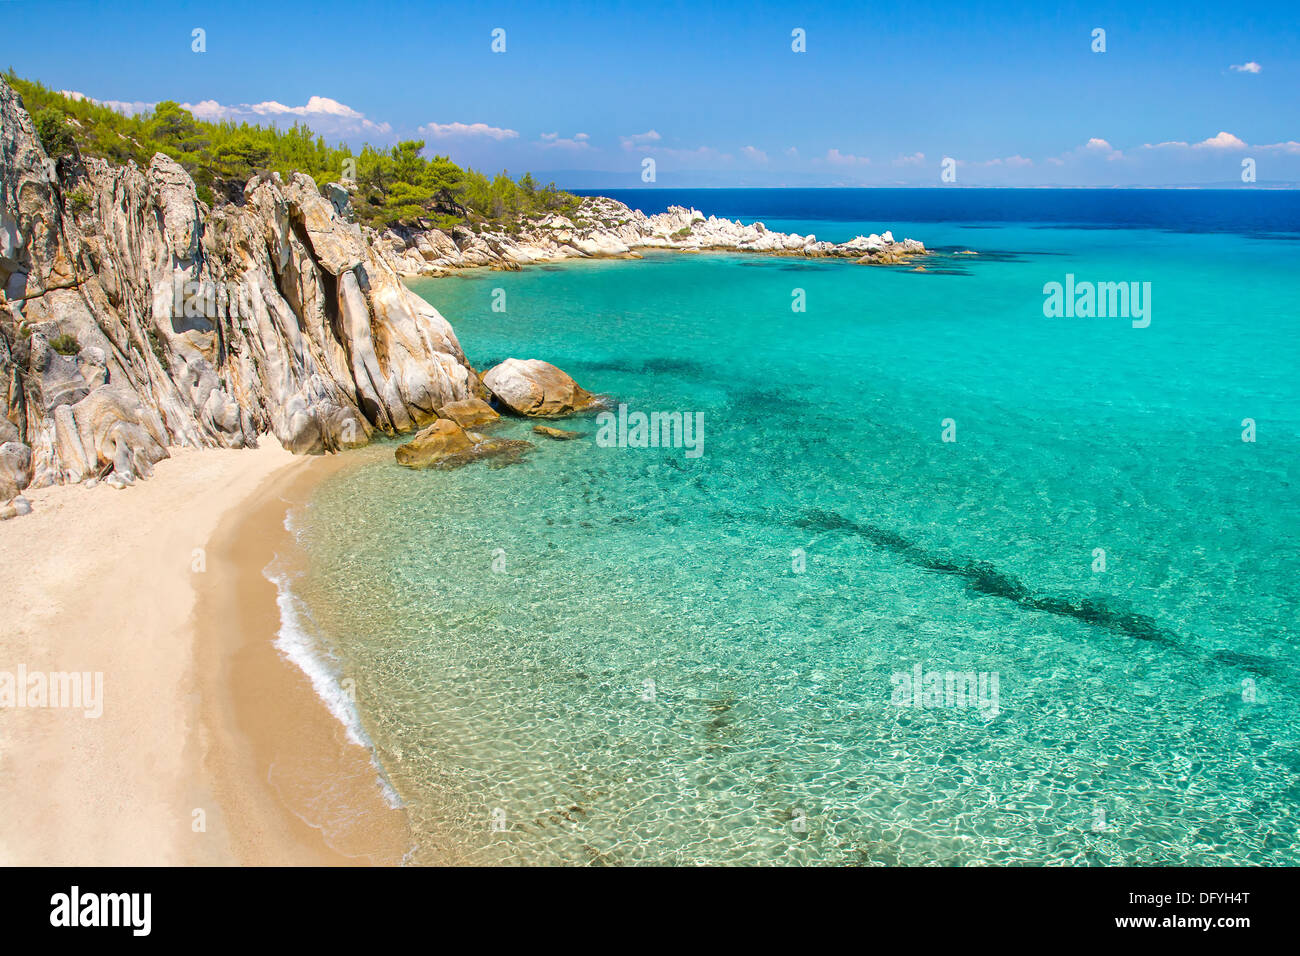 Rocky cliff above the beautiful clear water of the Aegean sea - Stock Image